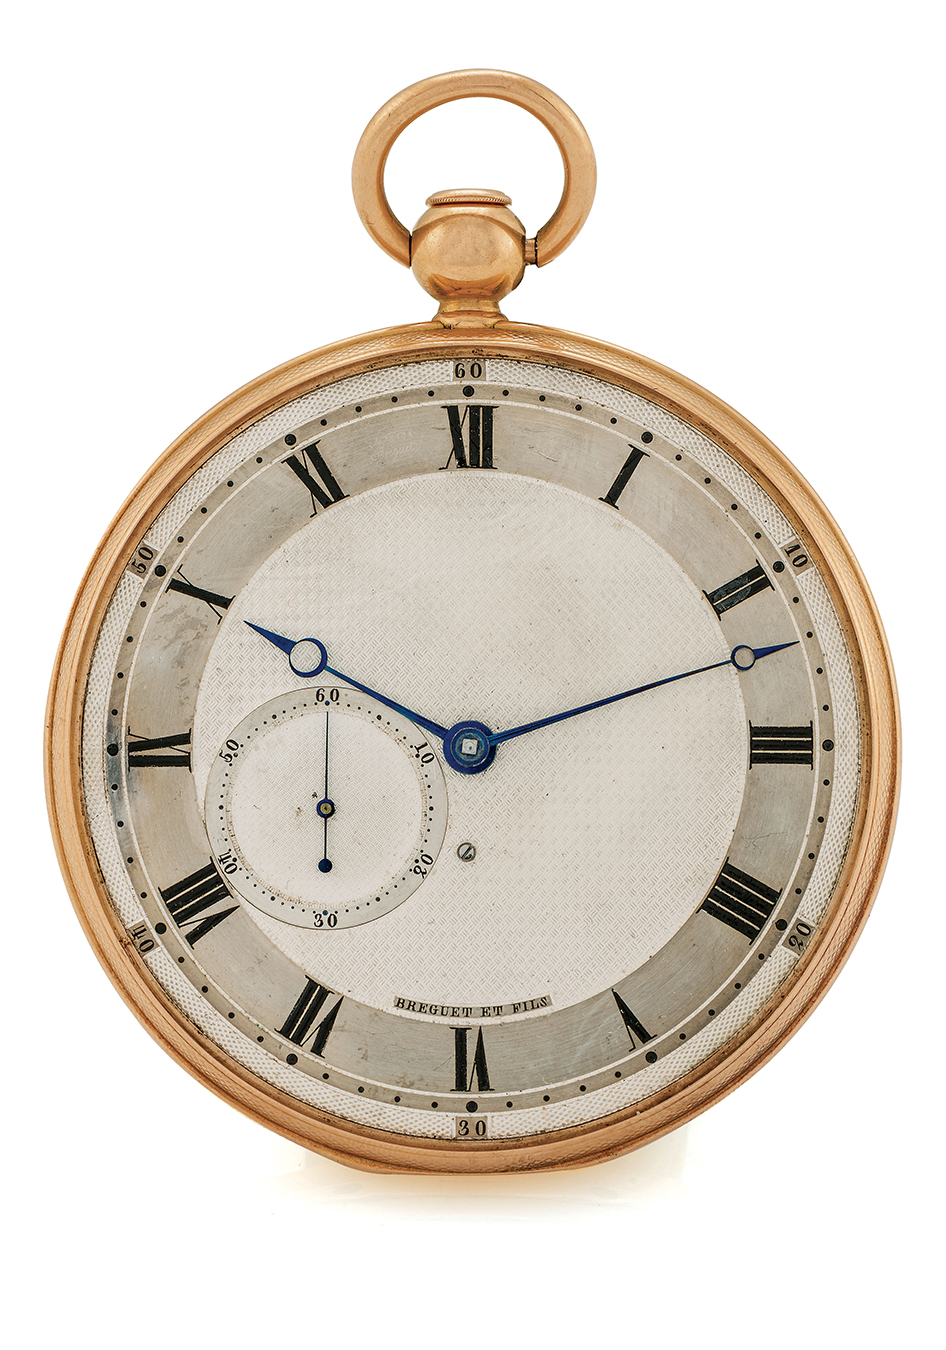 Breguet: Growth for museums